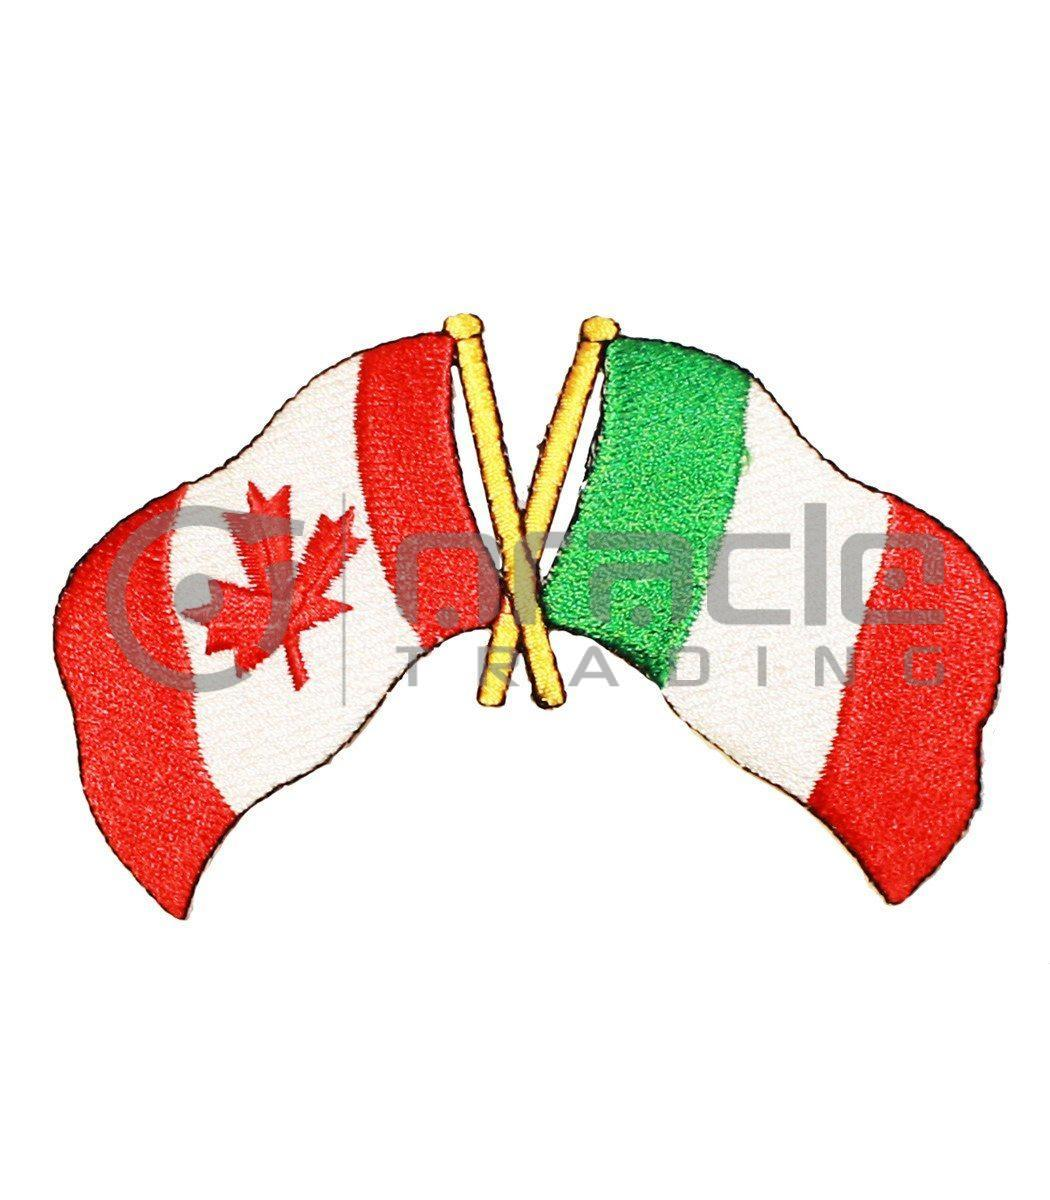 Italia / Canada Friendship Iron-on Patch